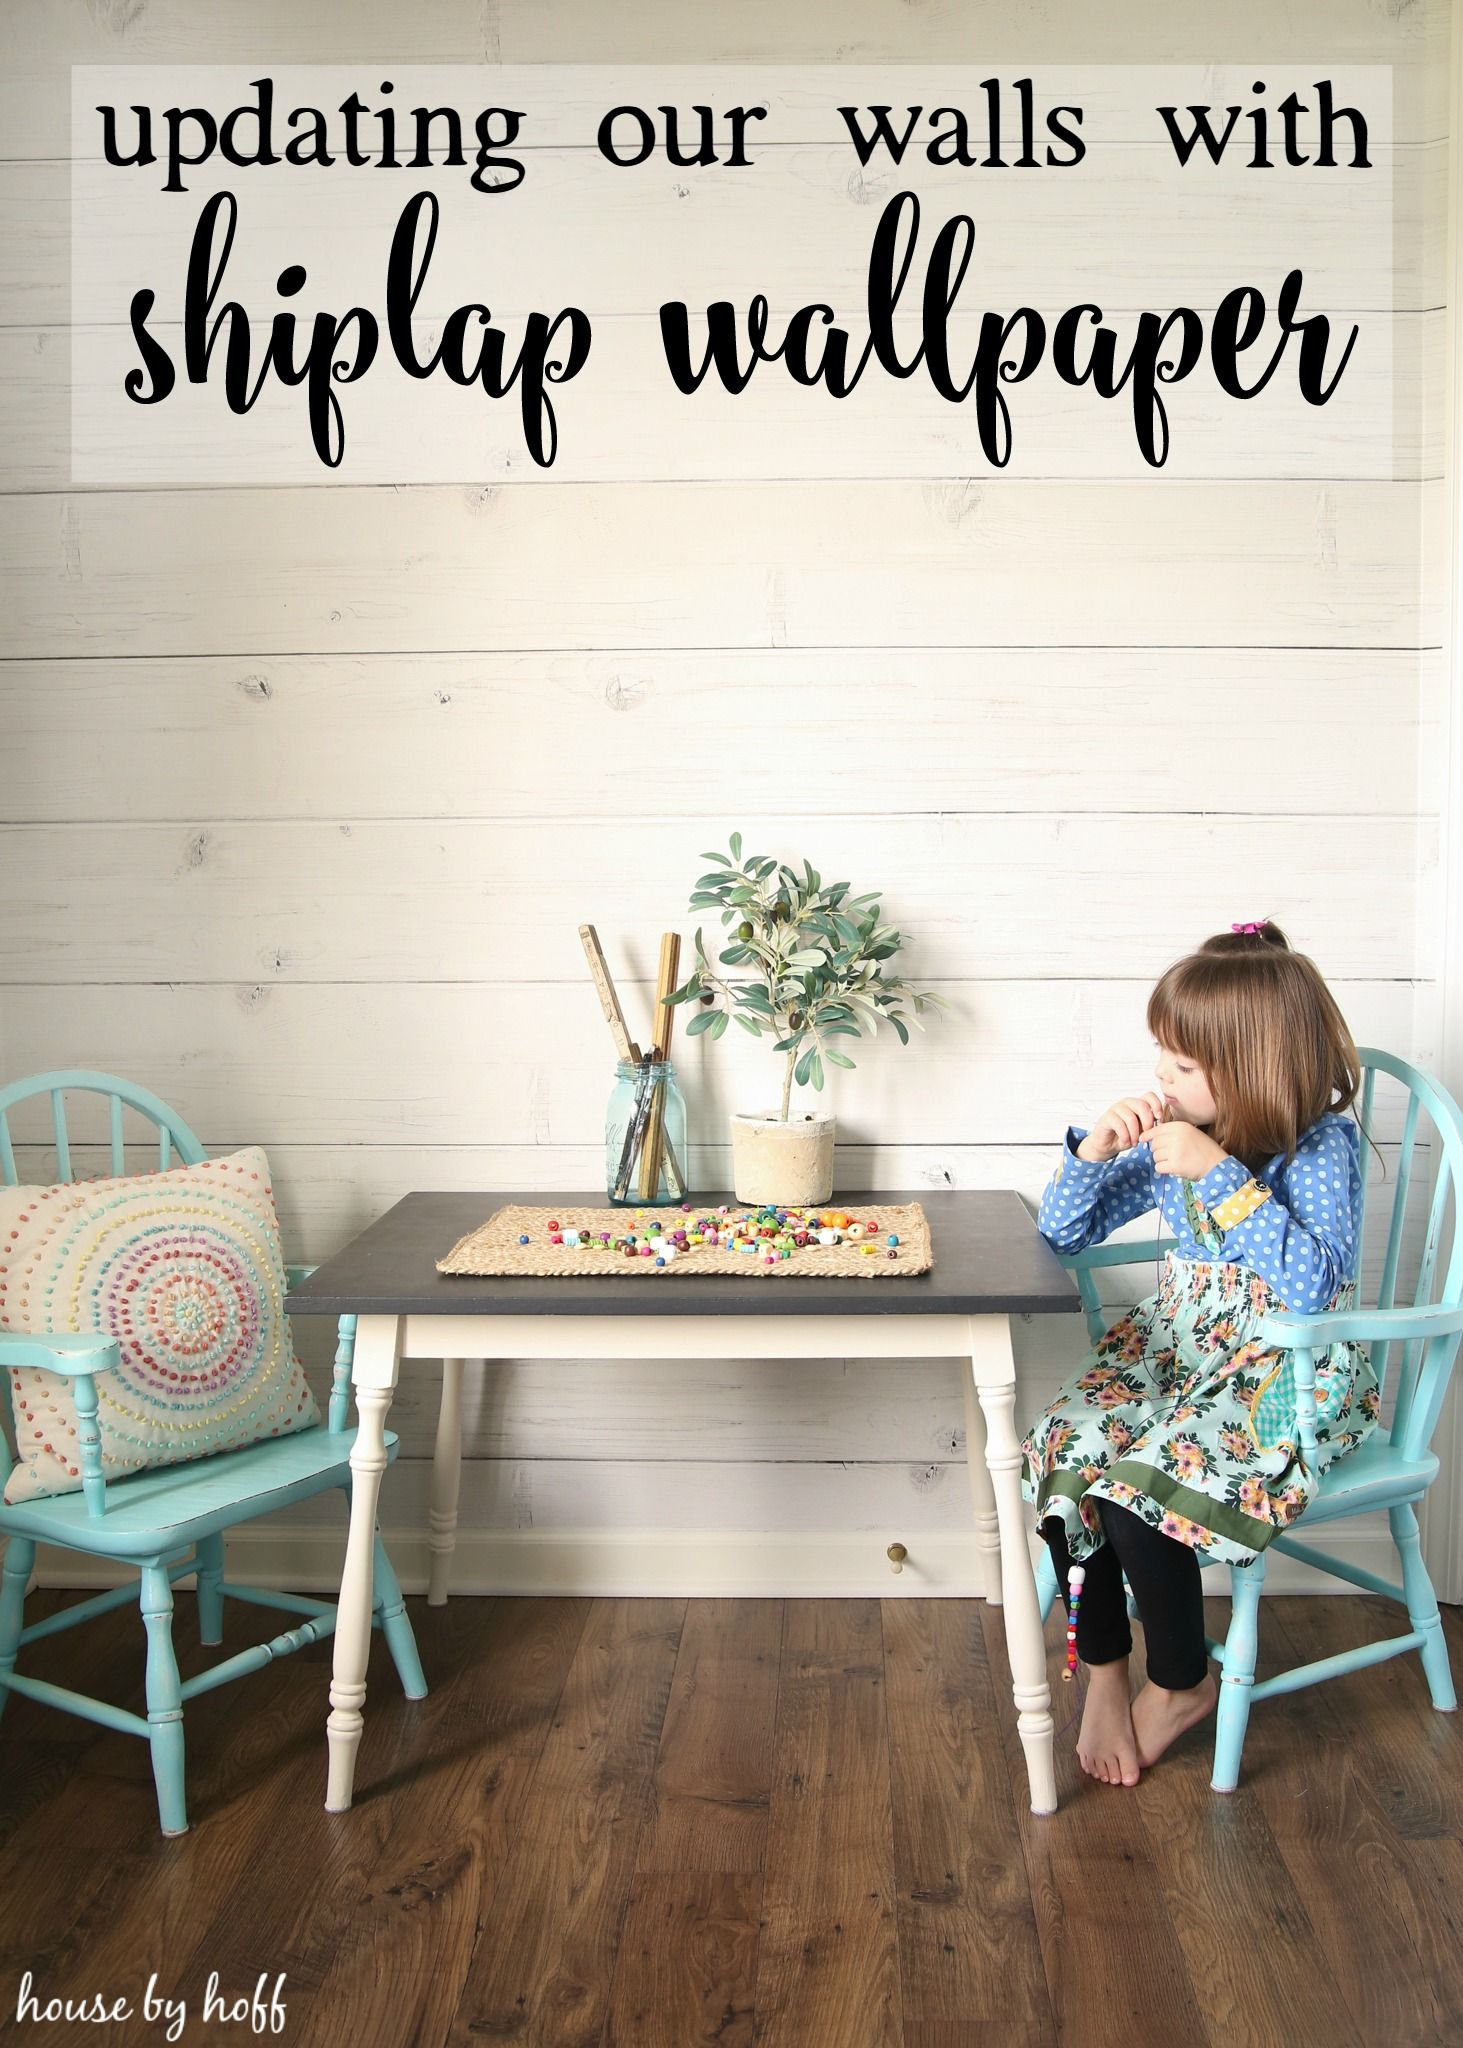 Updating Our Walls With Shiplap Wallpaper House By Hoff Home Wallpaper Farmhouse Wallpaper Kitchen Wallpaper